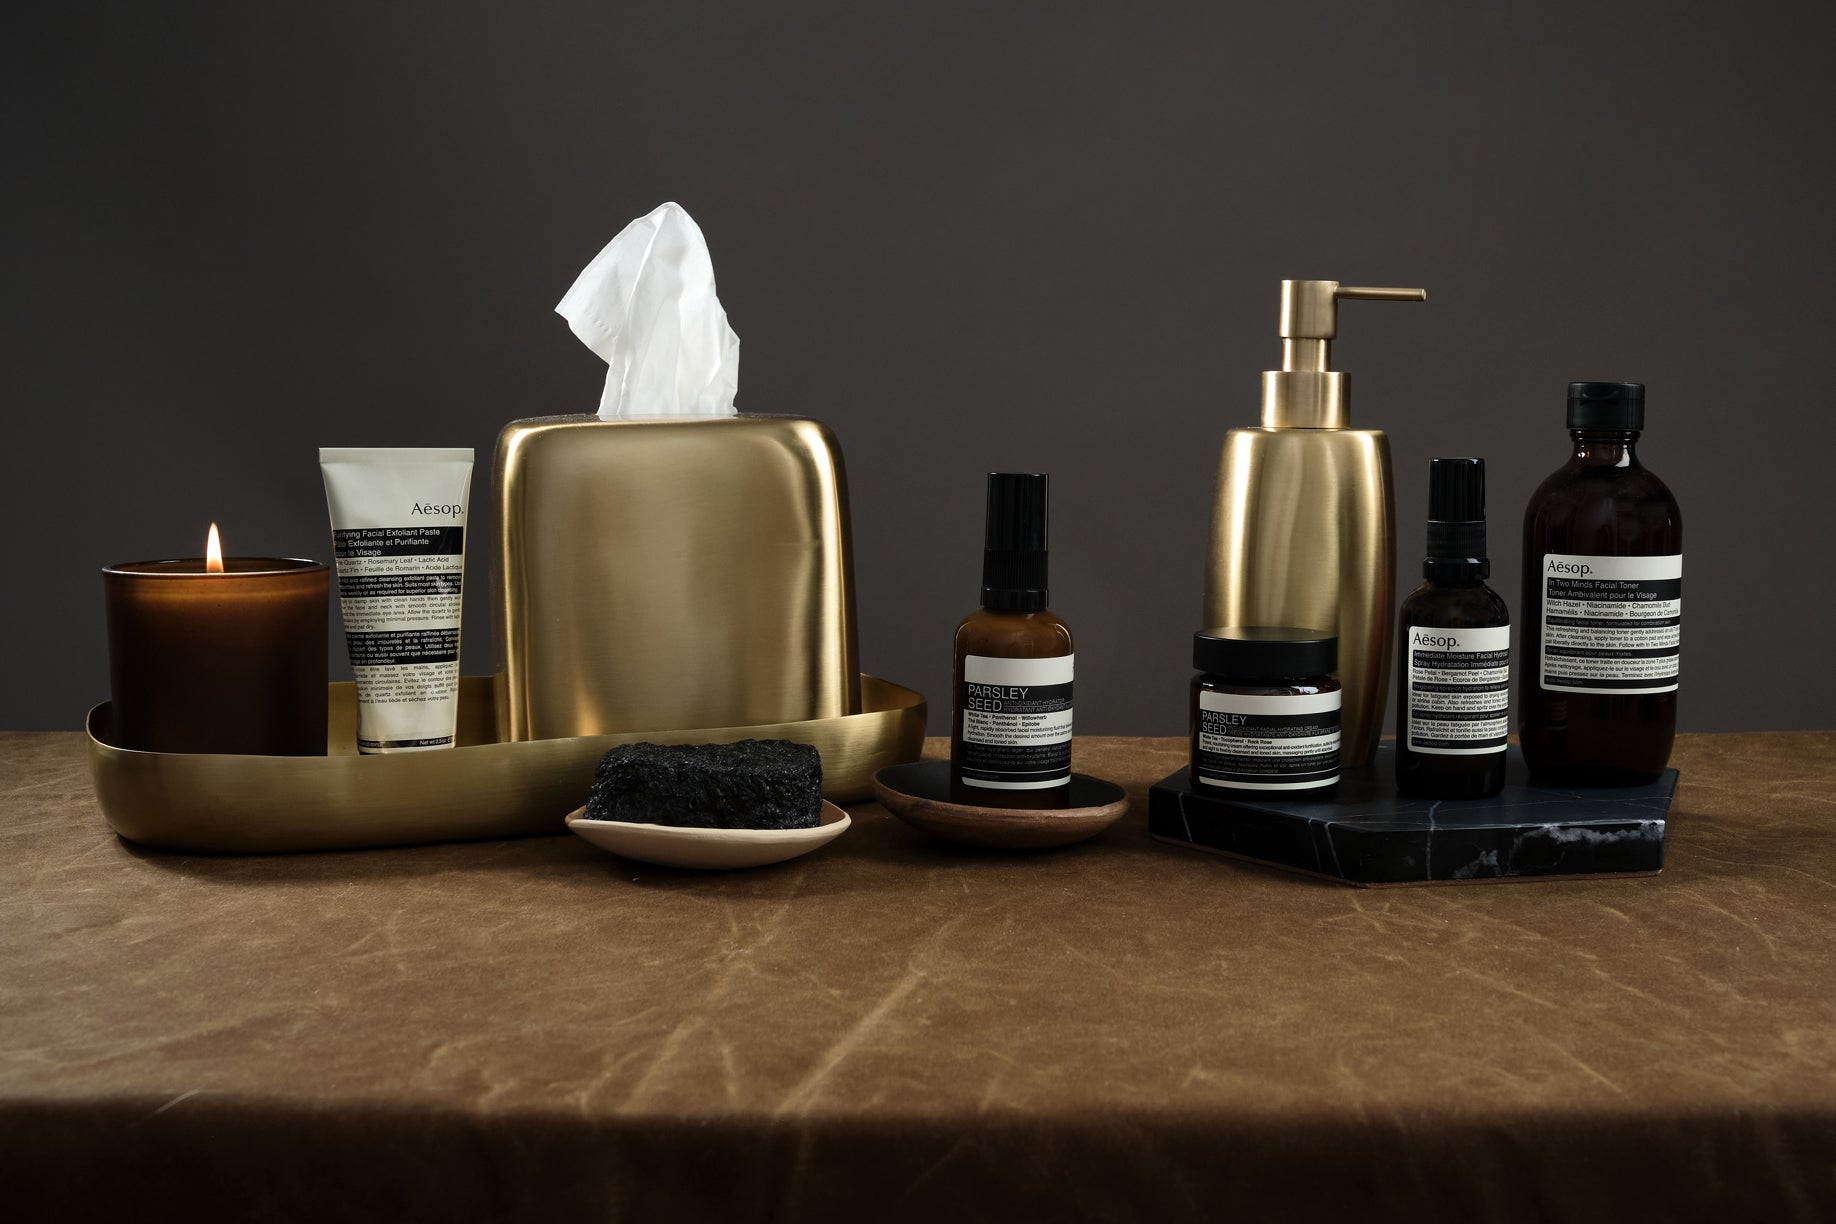 winter skincare from Aesop